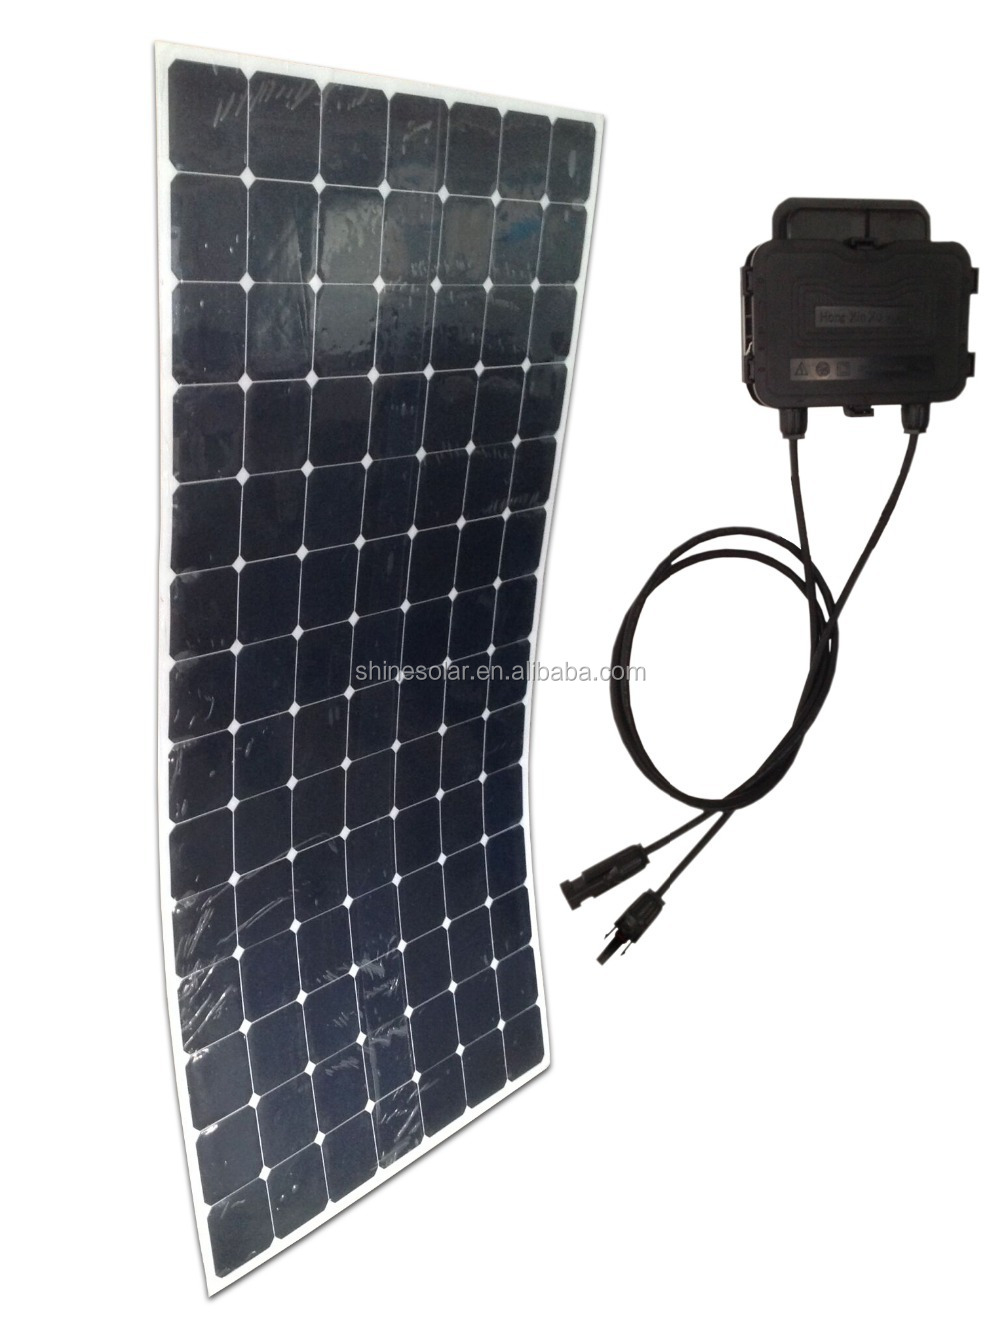 largest power solar rolling pv panel flexible 300w